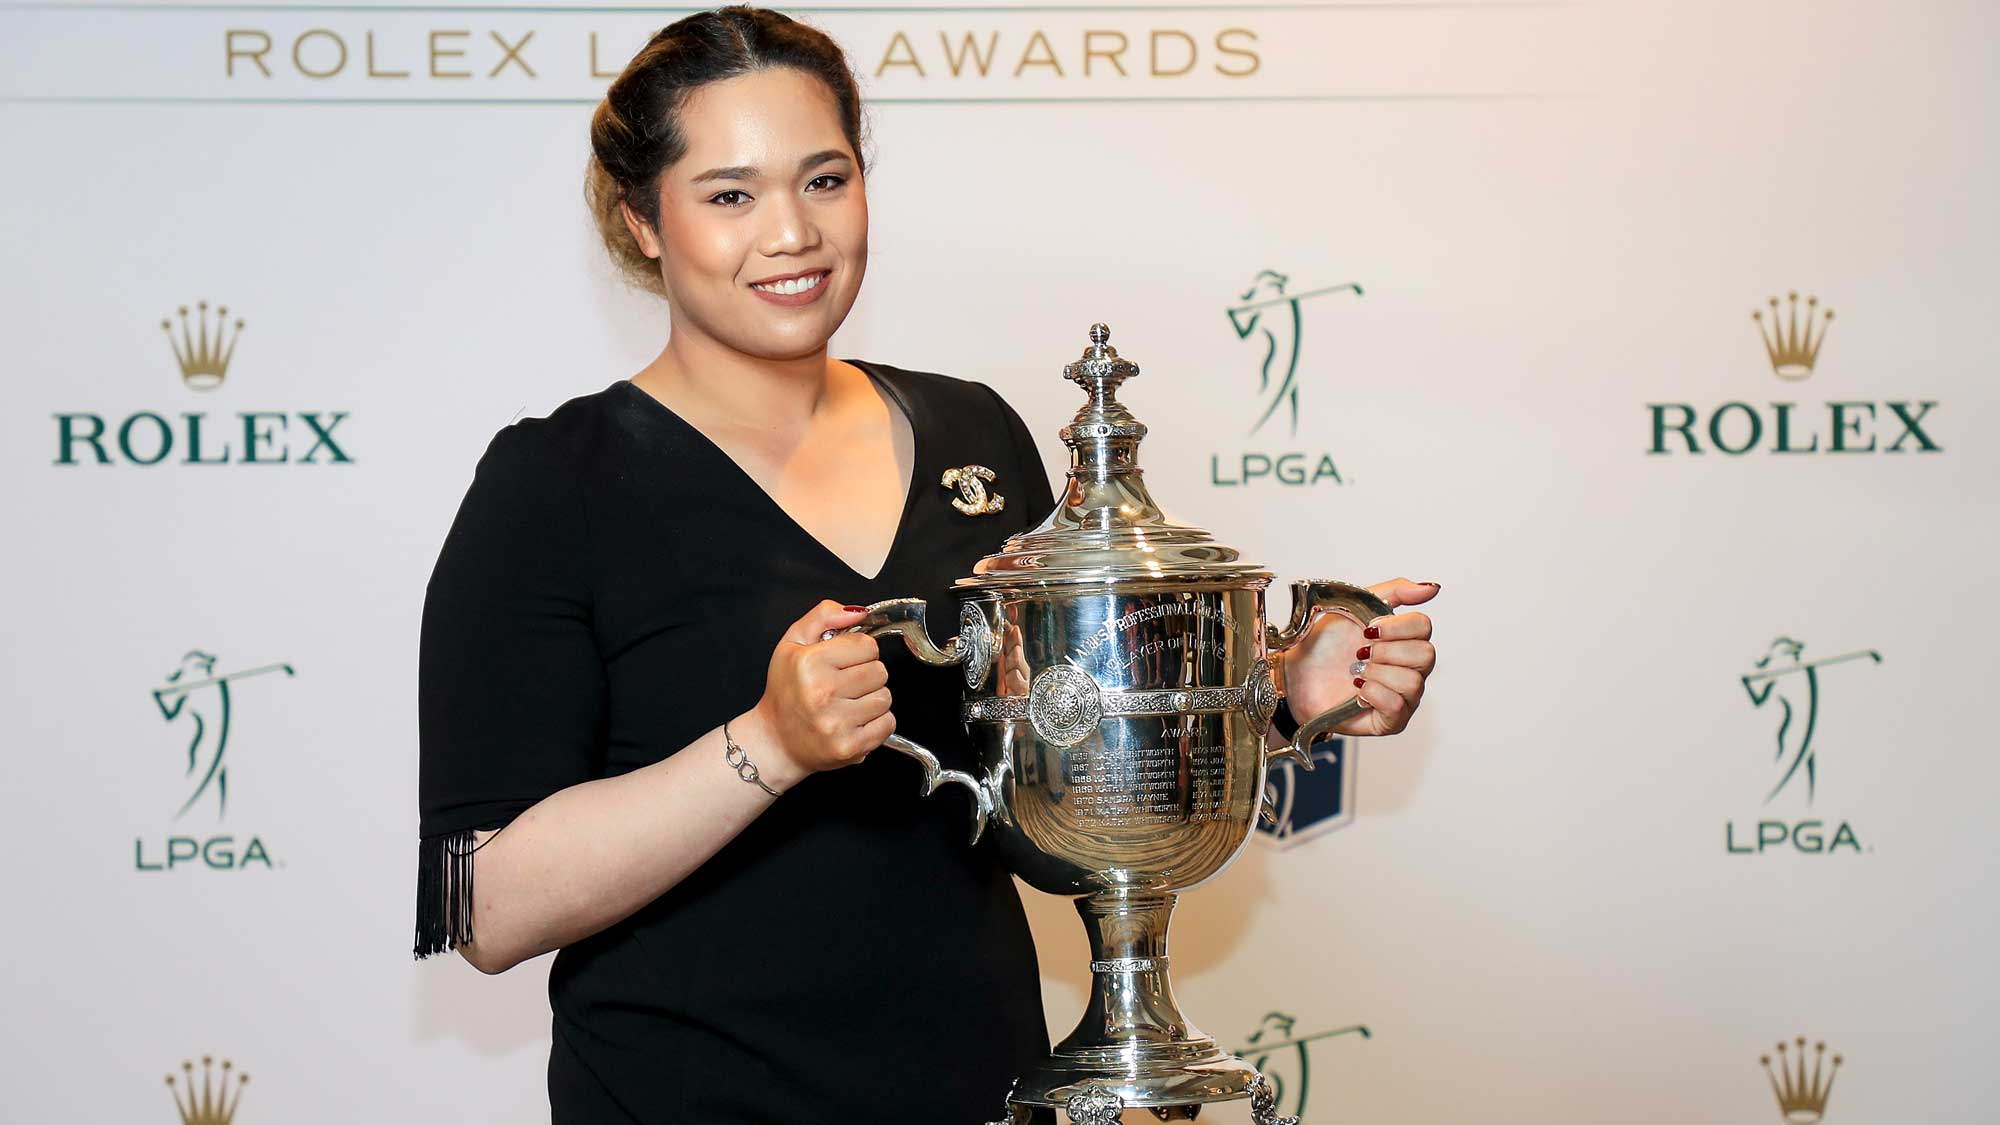 Ariya Jutanugarn of Thailand poses with the Rolex Player of the Year trophy after the LPGA Rolex Players Awards at the Ritz-Carlton Golf Resort